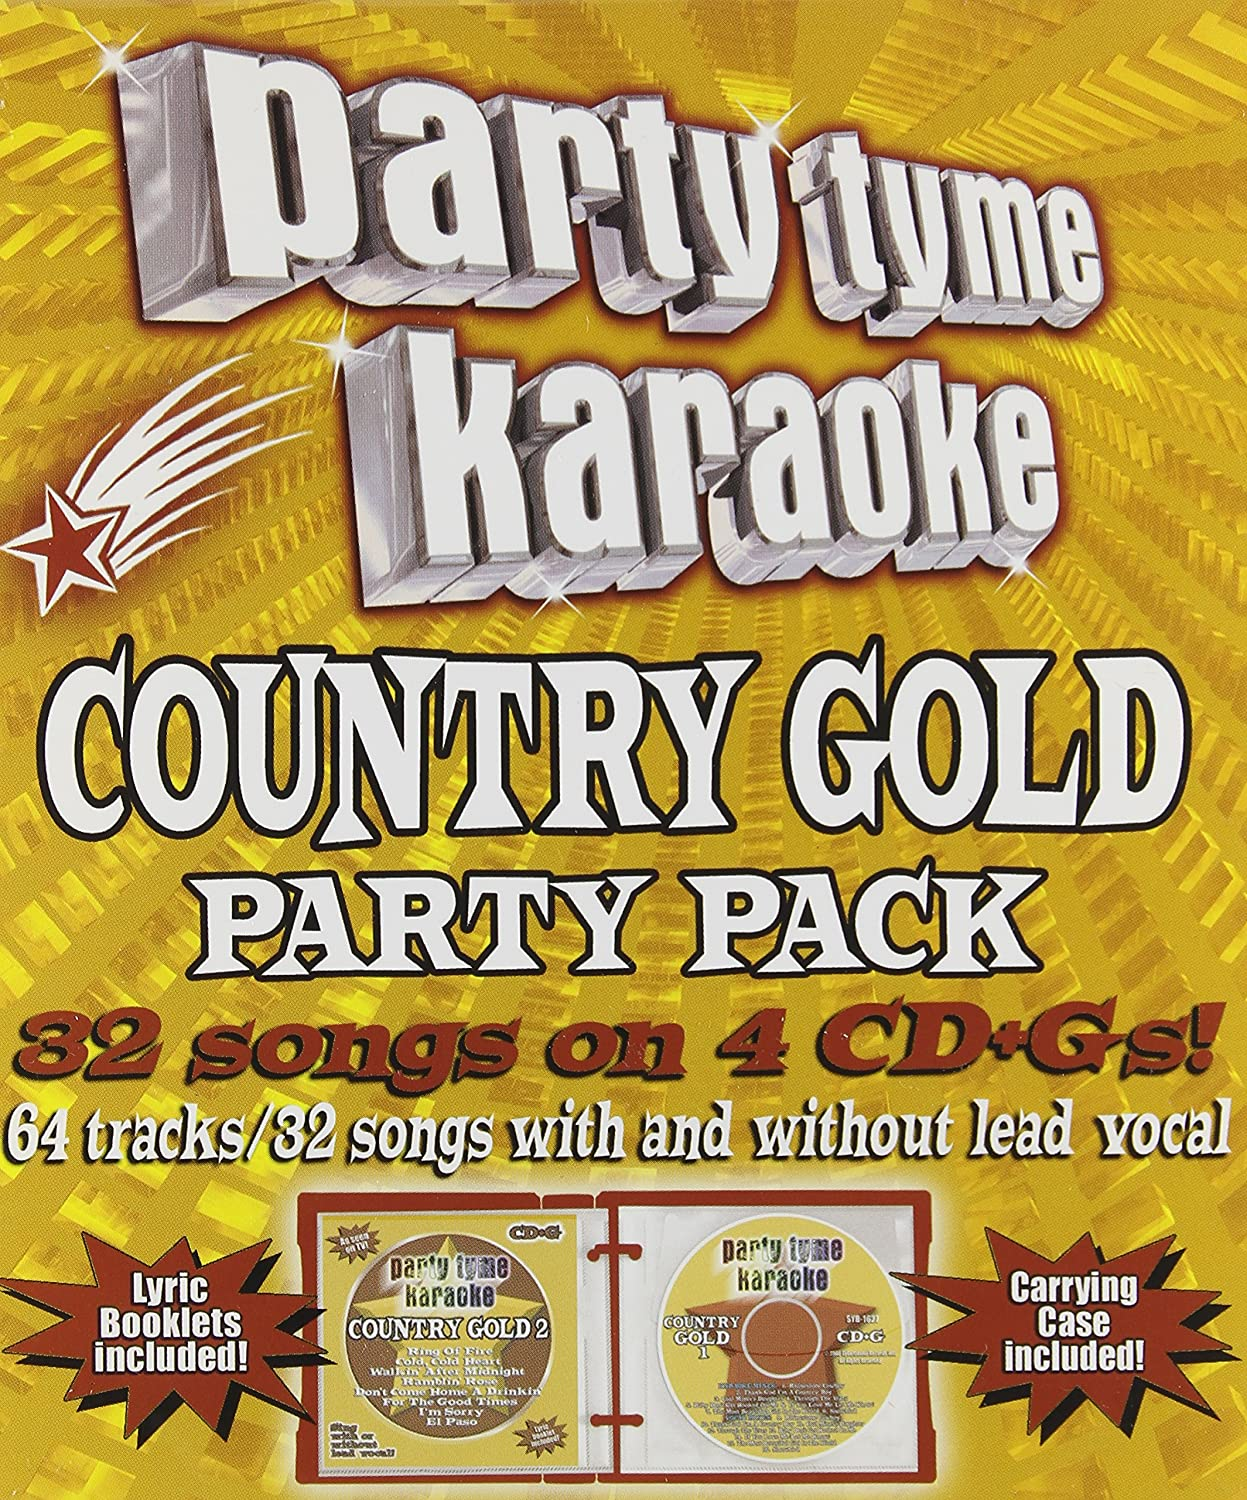 Party Tyme Karaoke: Country Gold Party Pack Karaoke, Best of, Box set, Enhanced Sybersound J. Christopher J.D. Cash M. Davis